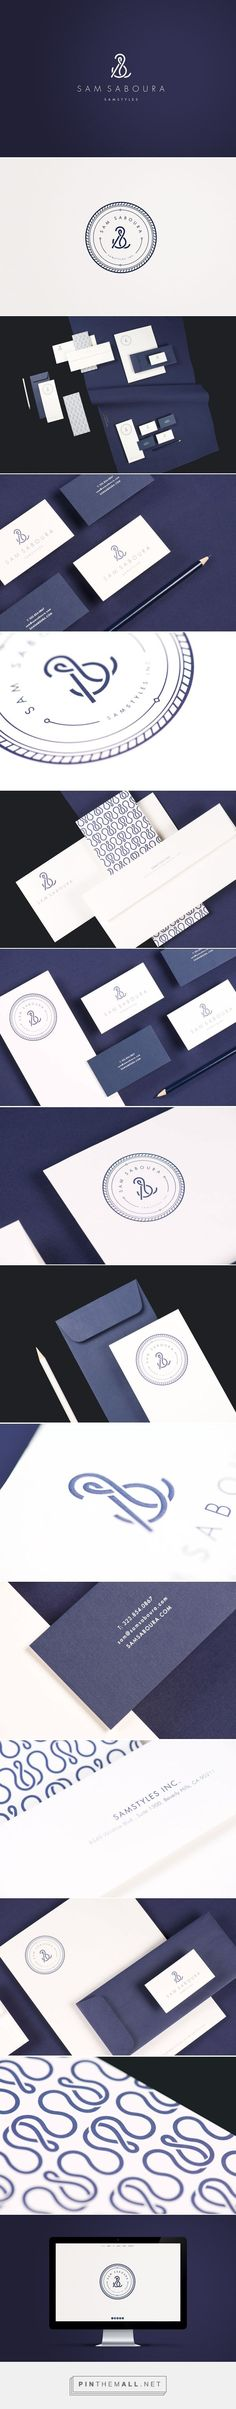 Sam Saboura on Behance... - a grouped images picture - Pin Them All http://jrstudioweb.com/diseno-grafico/diseno-de-logotipos/